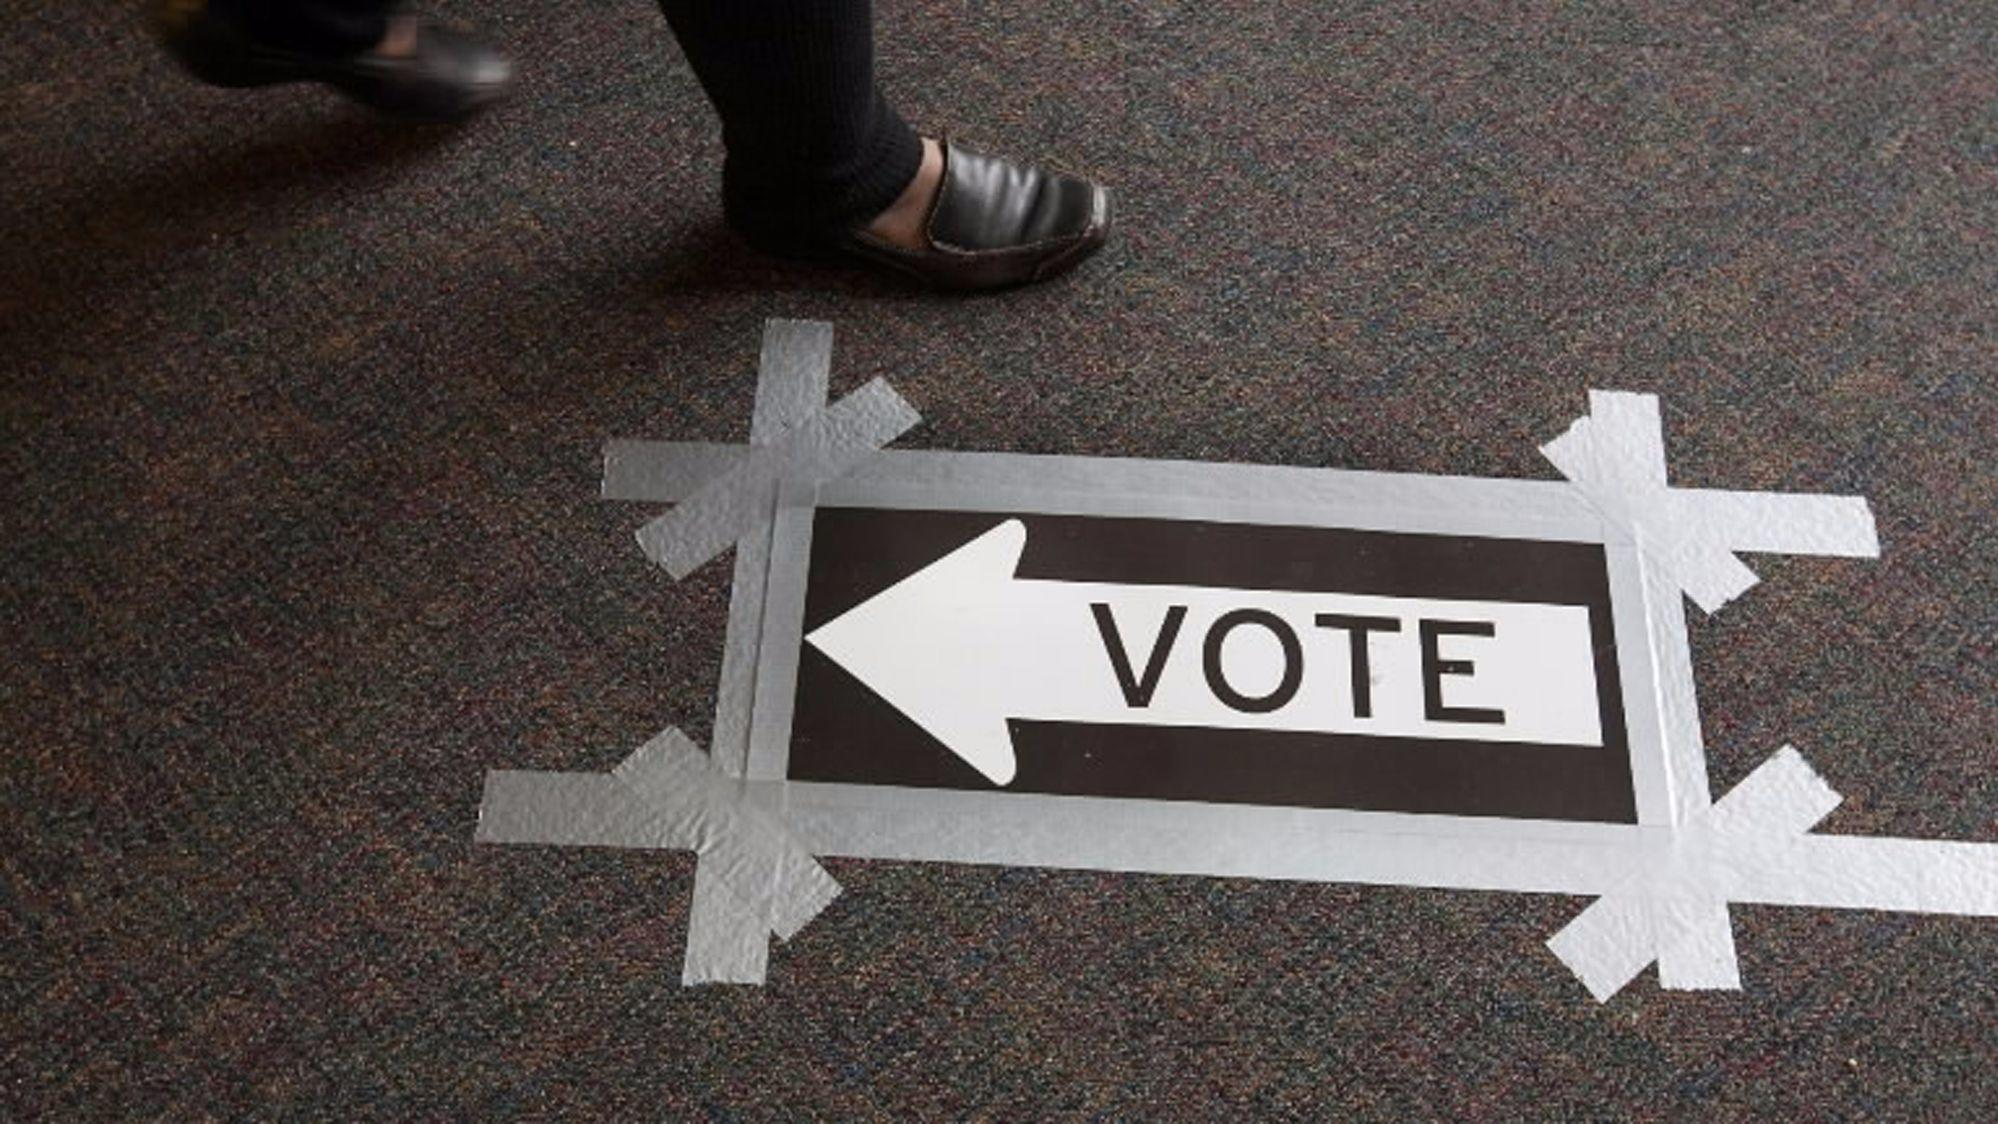 Voters Guide To Candidates In Laurel City Council Elections   Laurel Leader    Laurel, Maryland News